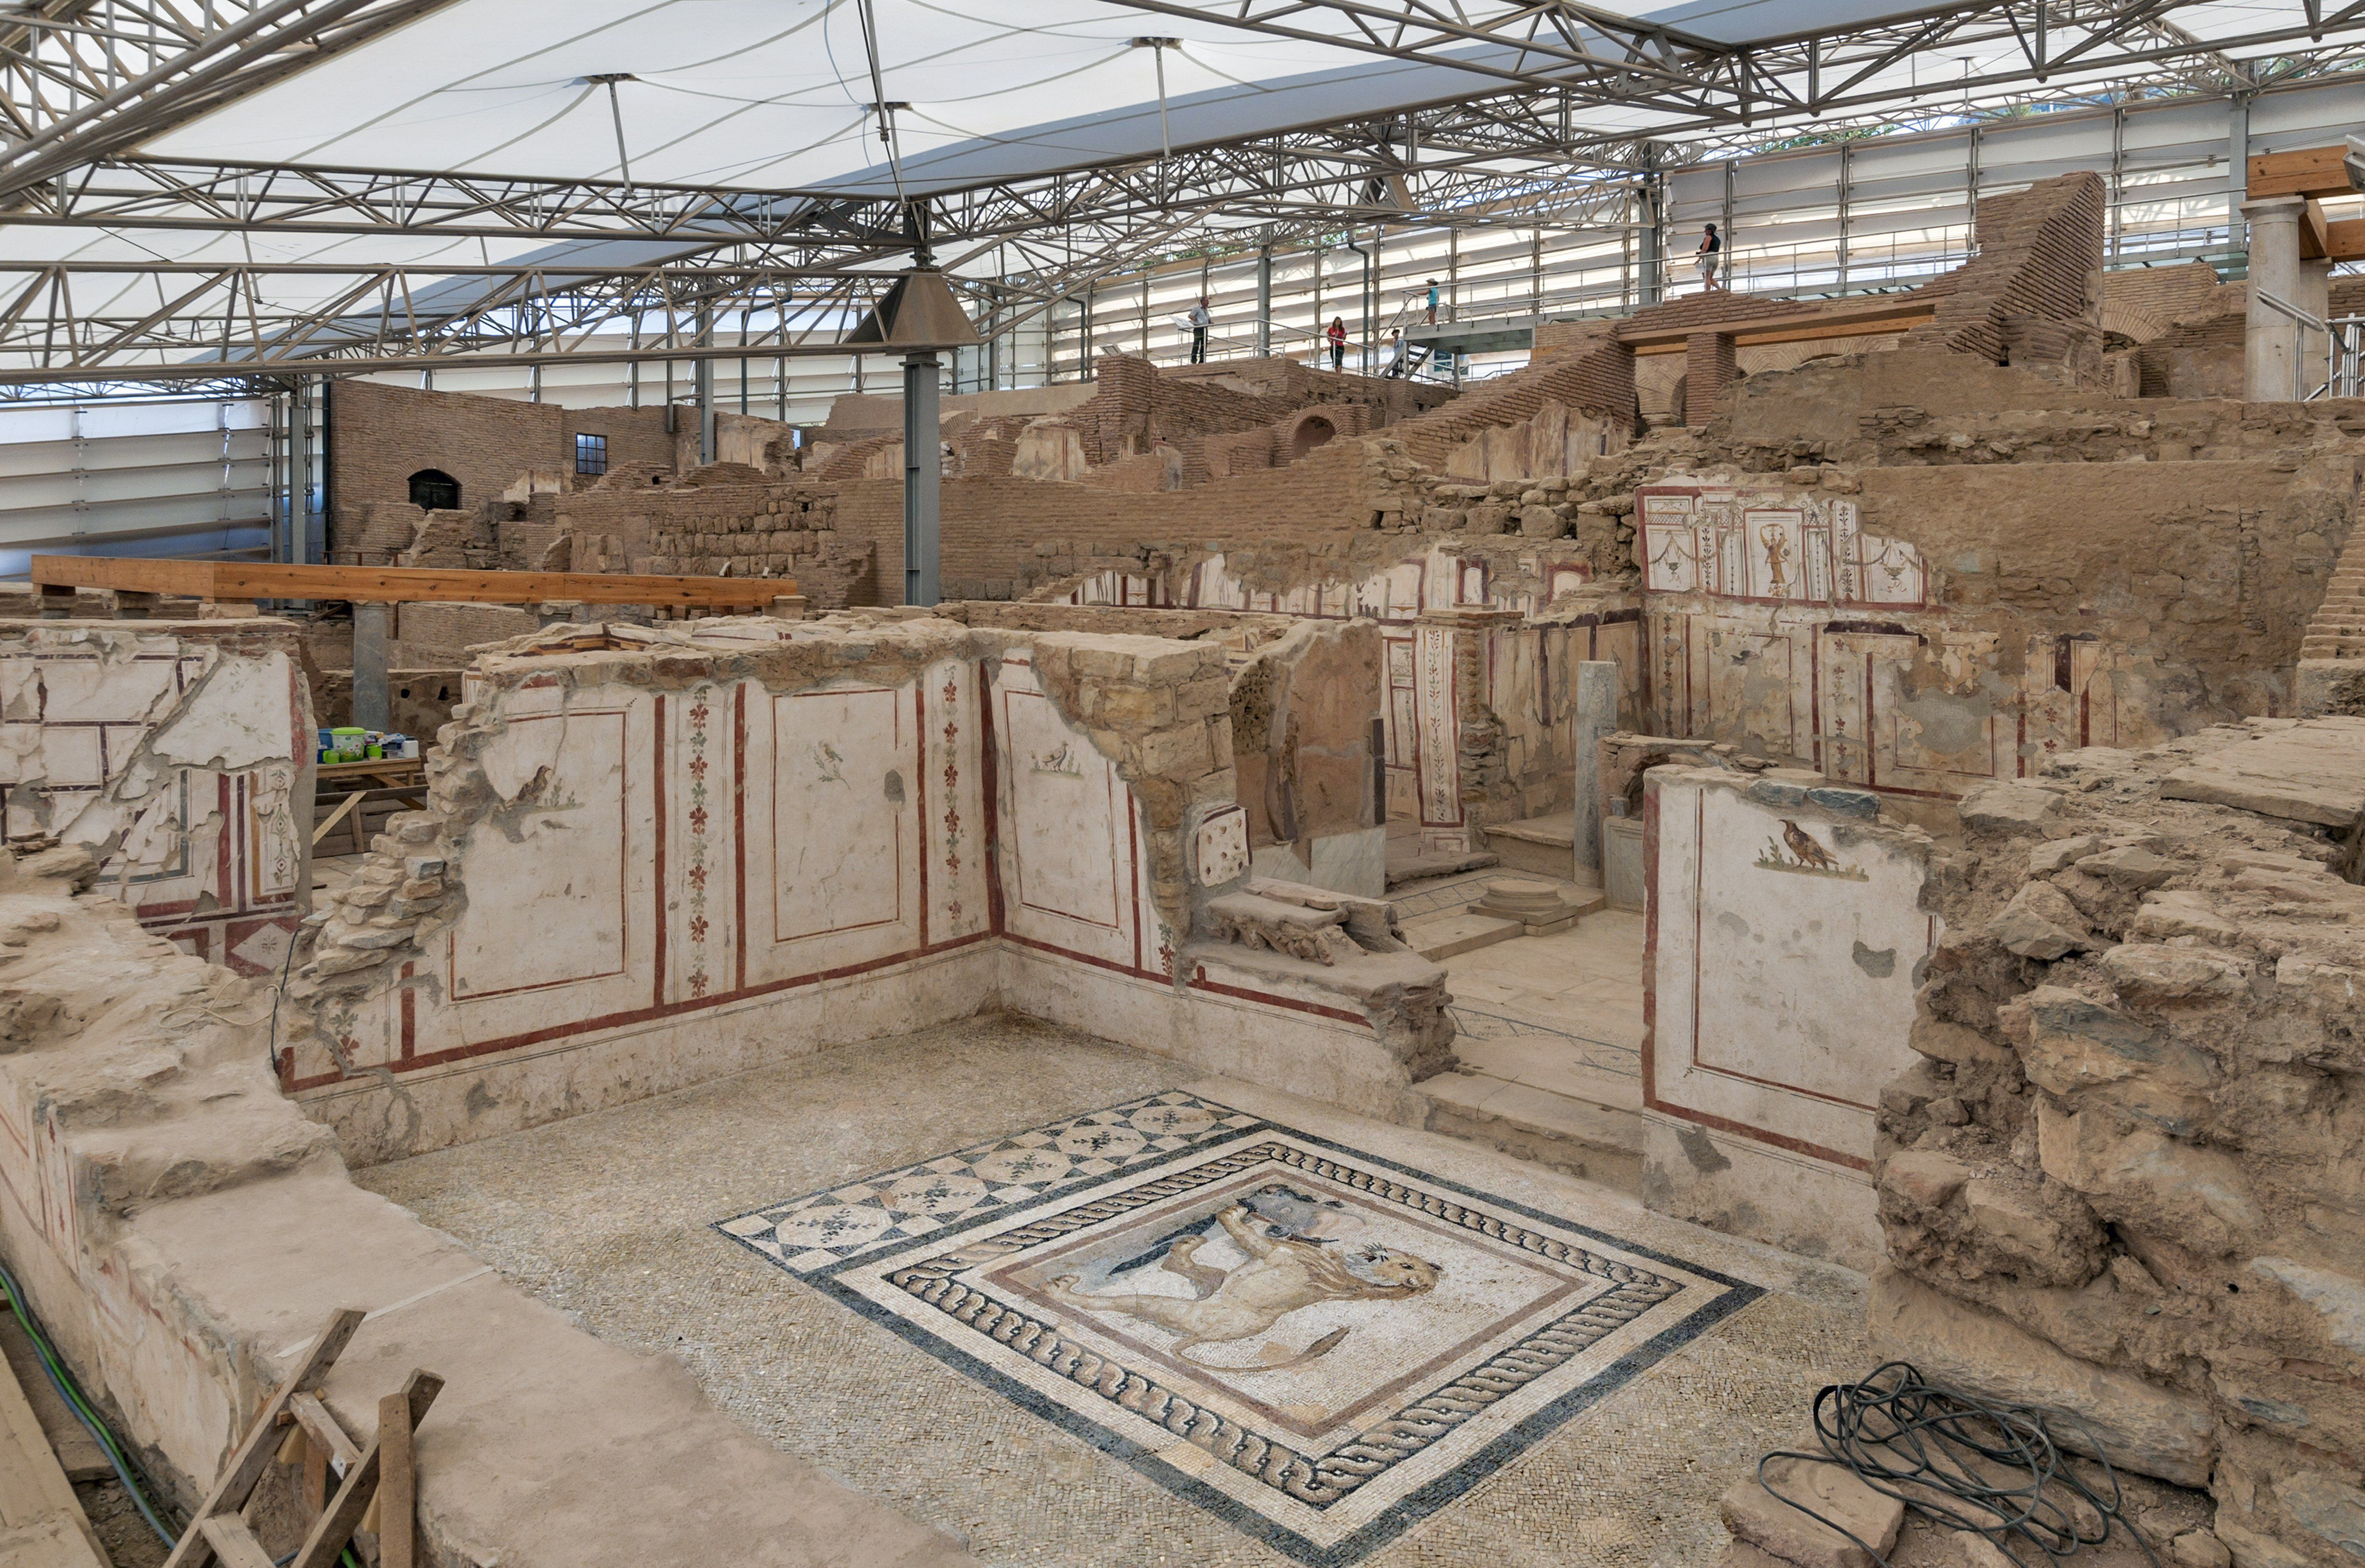 covered archeological site revealing mosaic flooring